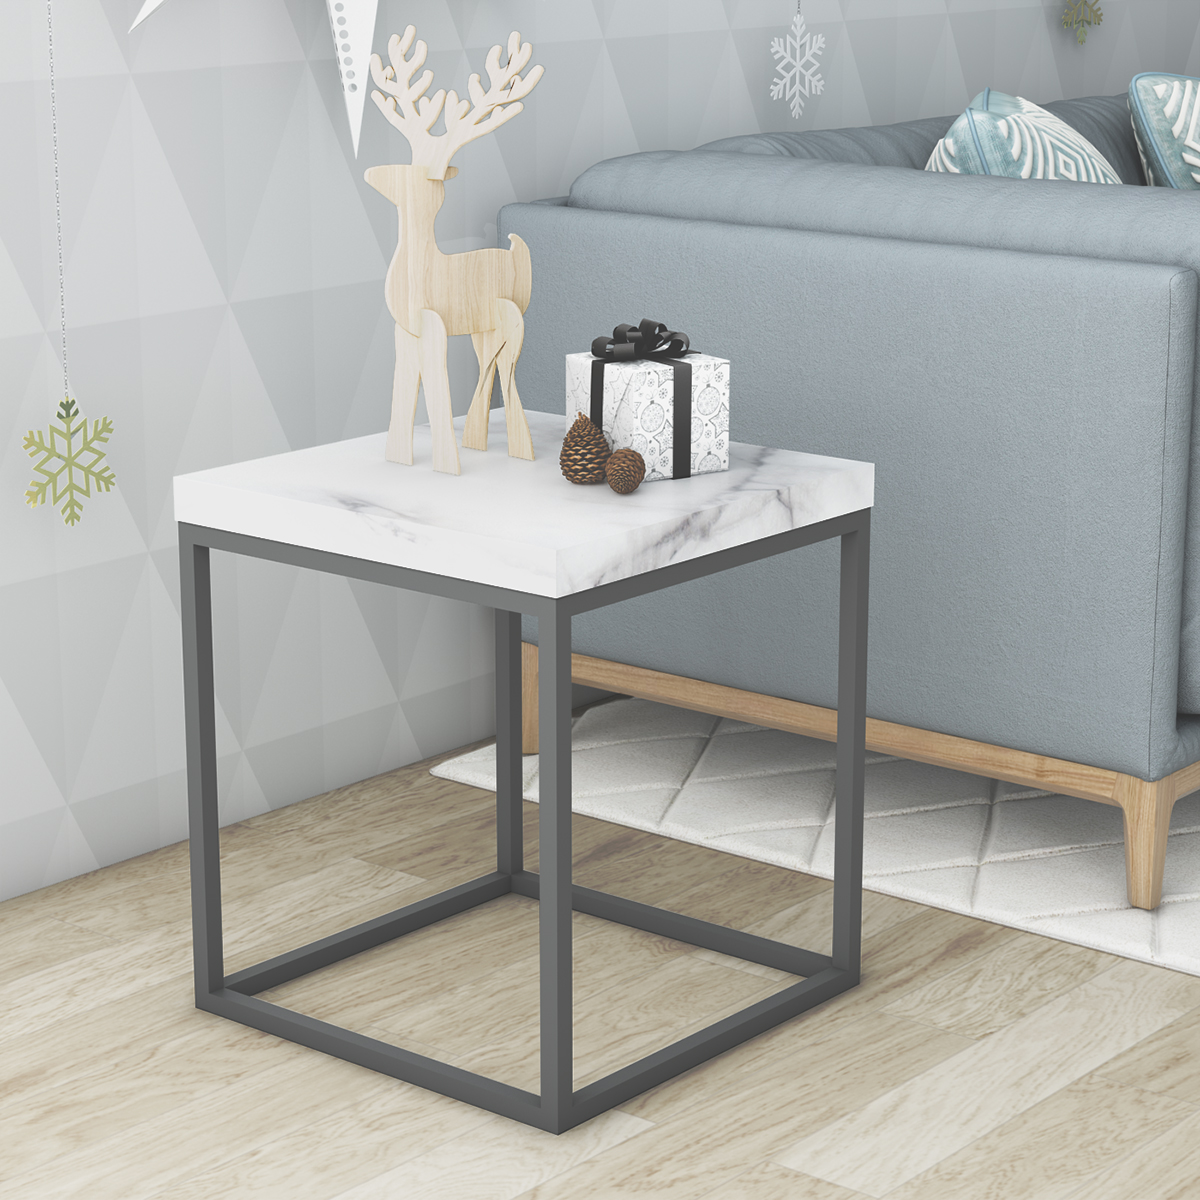 Faux Marble White Top End Table,Black Metal Frame Side Table For Living  Room New